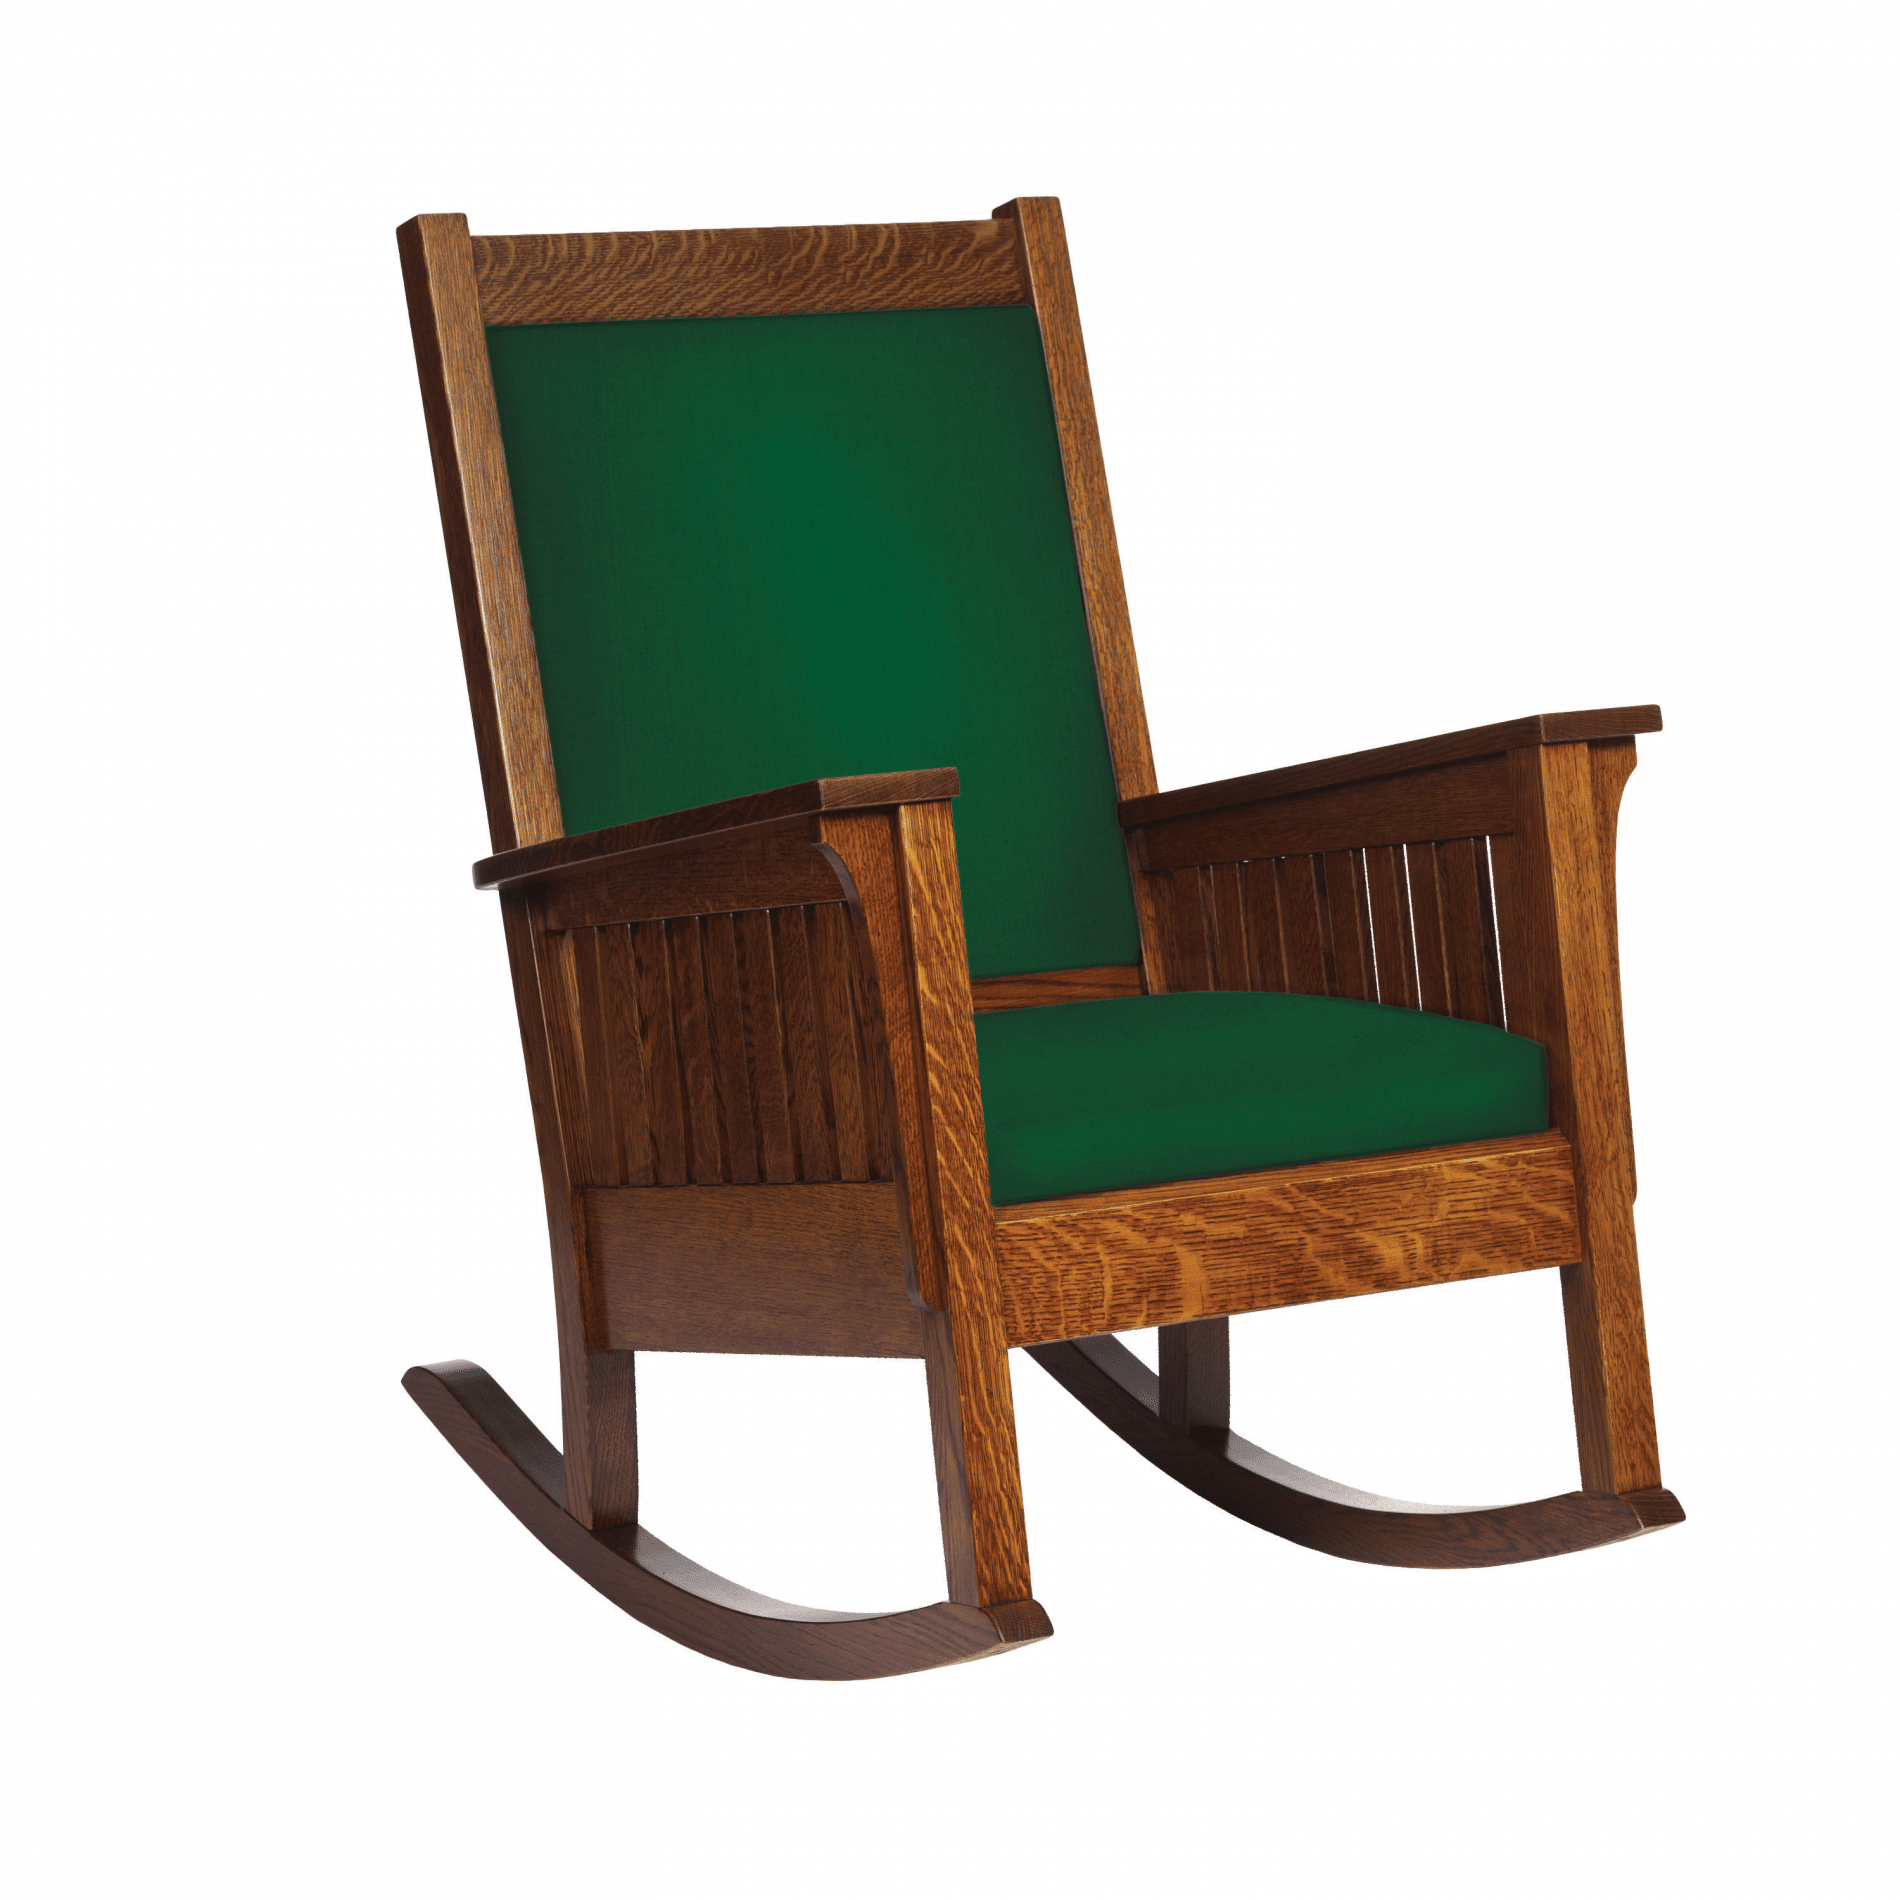 Affinity Mission Rocking Chair (Amrc) | Alumnichairs In Luxury Mission Style Rocking Chairs (#2 of 20)